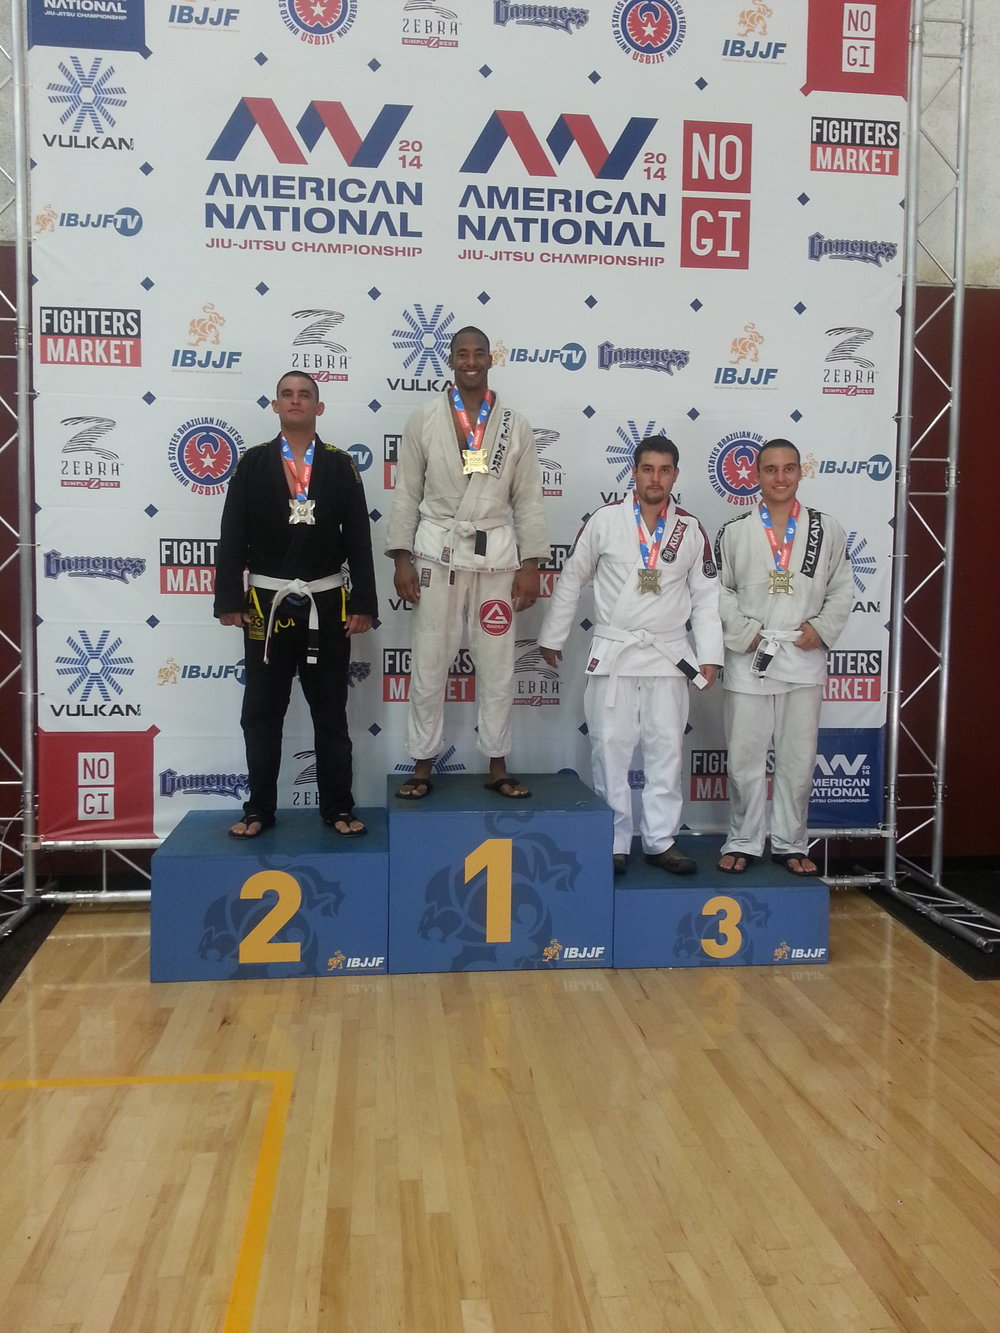 American National Champion 2014